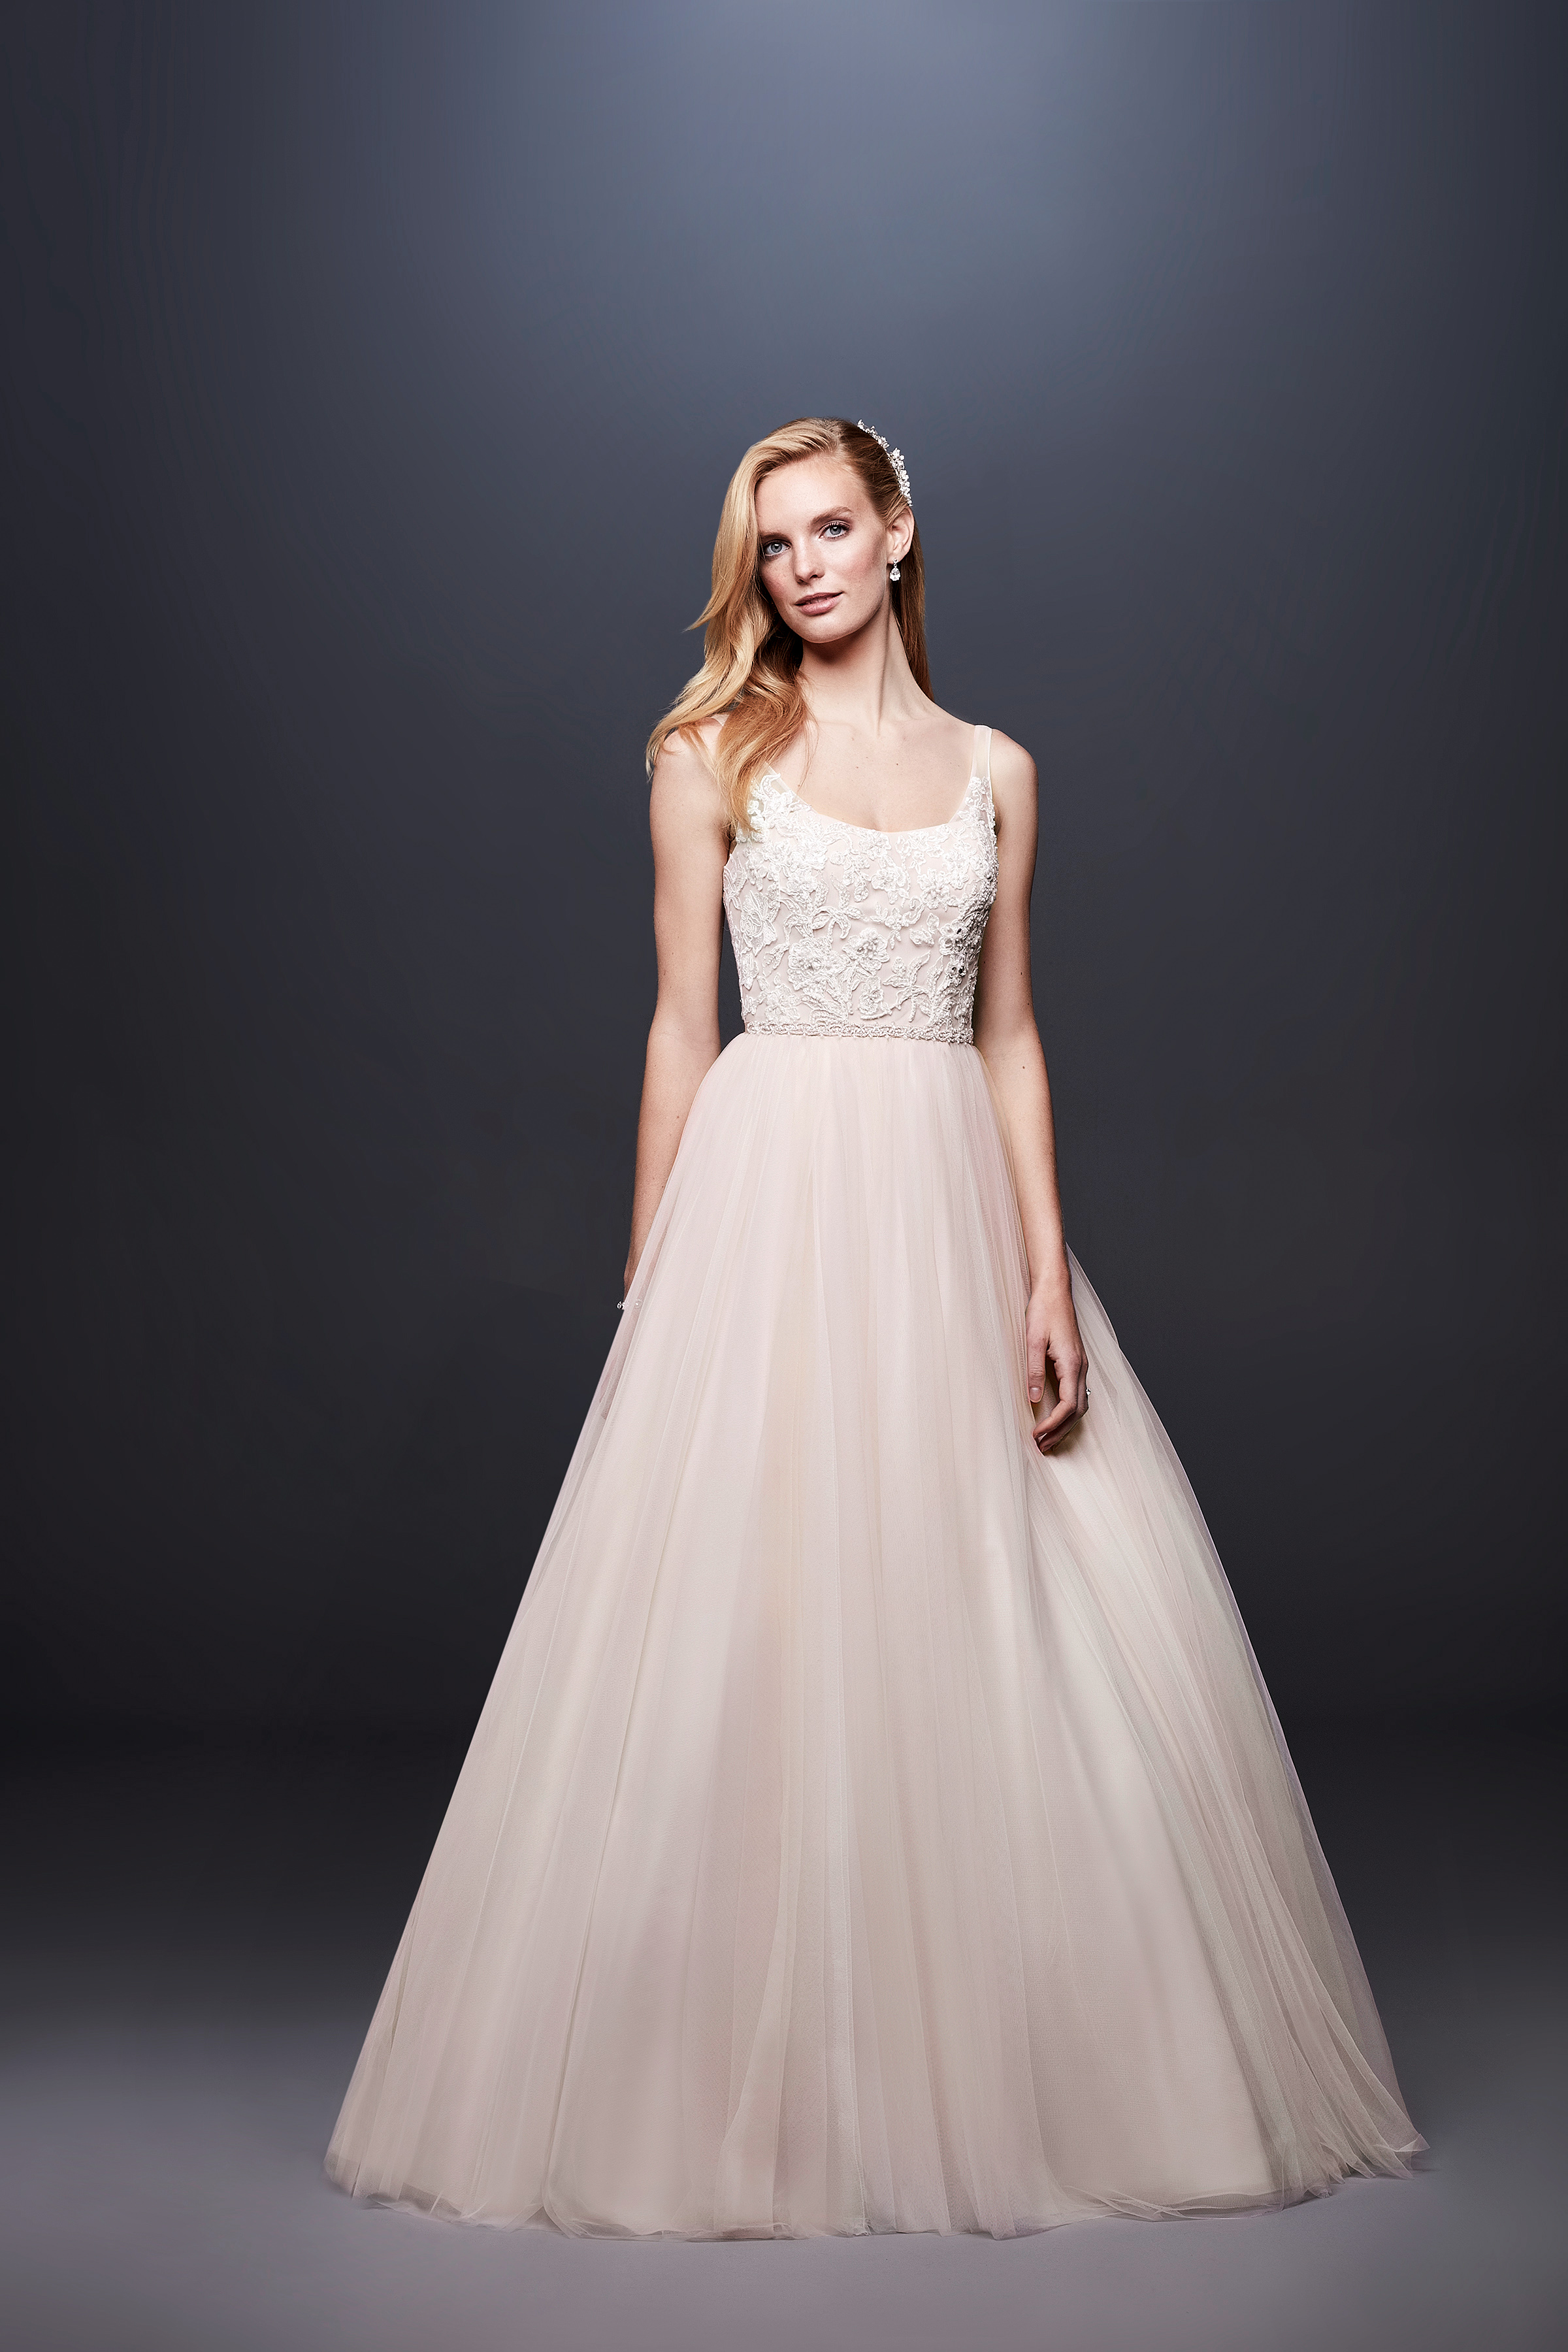 david bridal wedding dress spring 2019 sleeveless a-line tulle